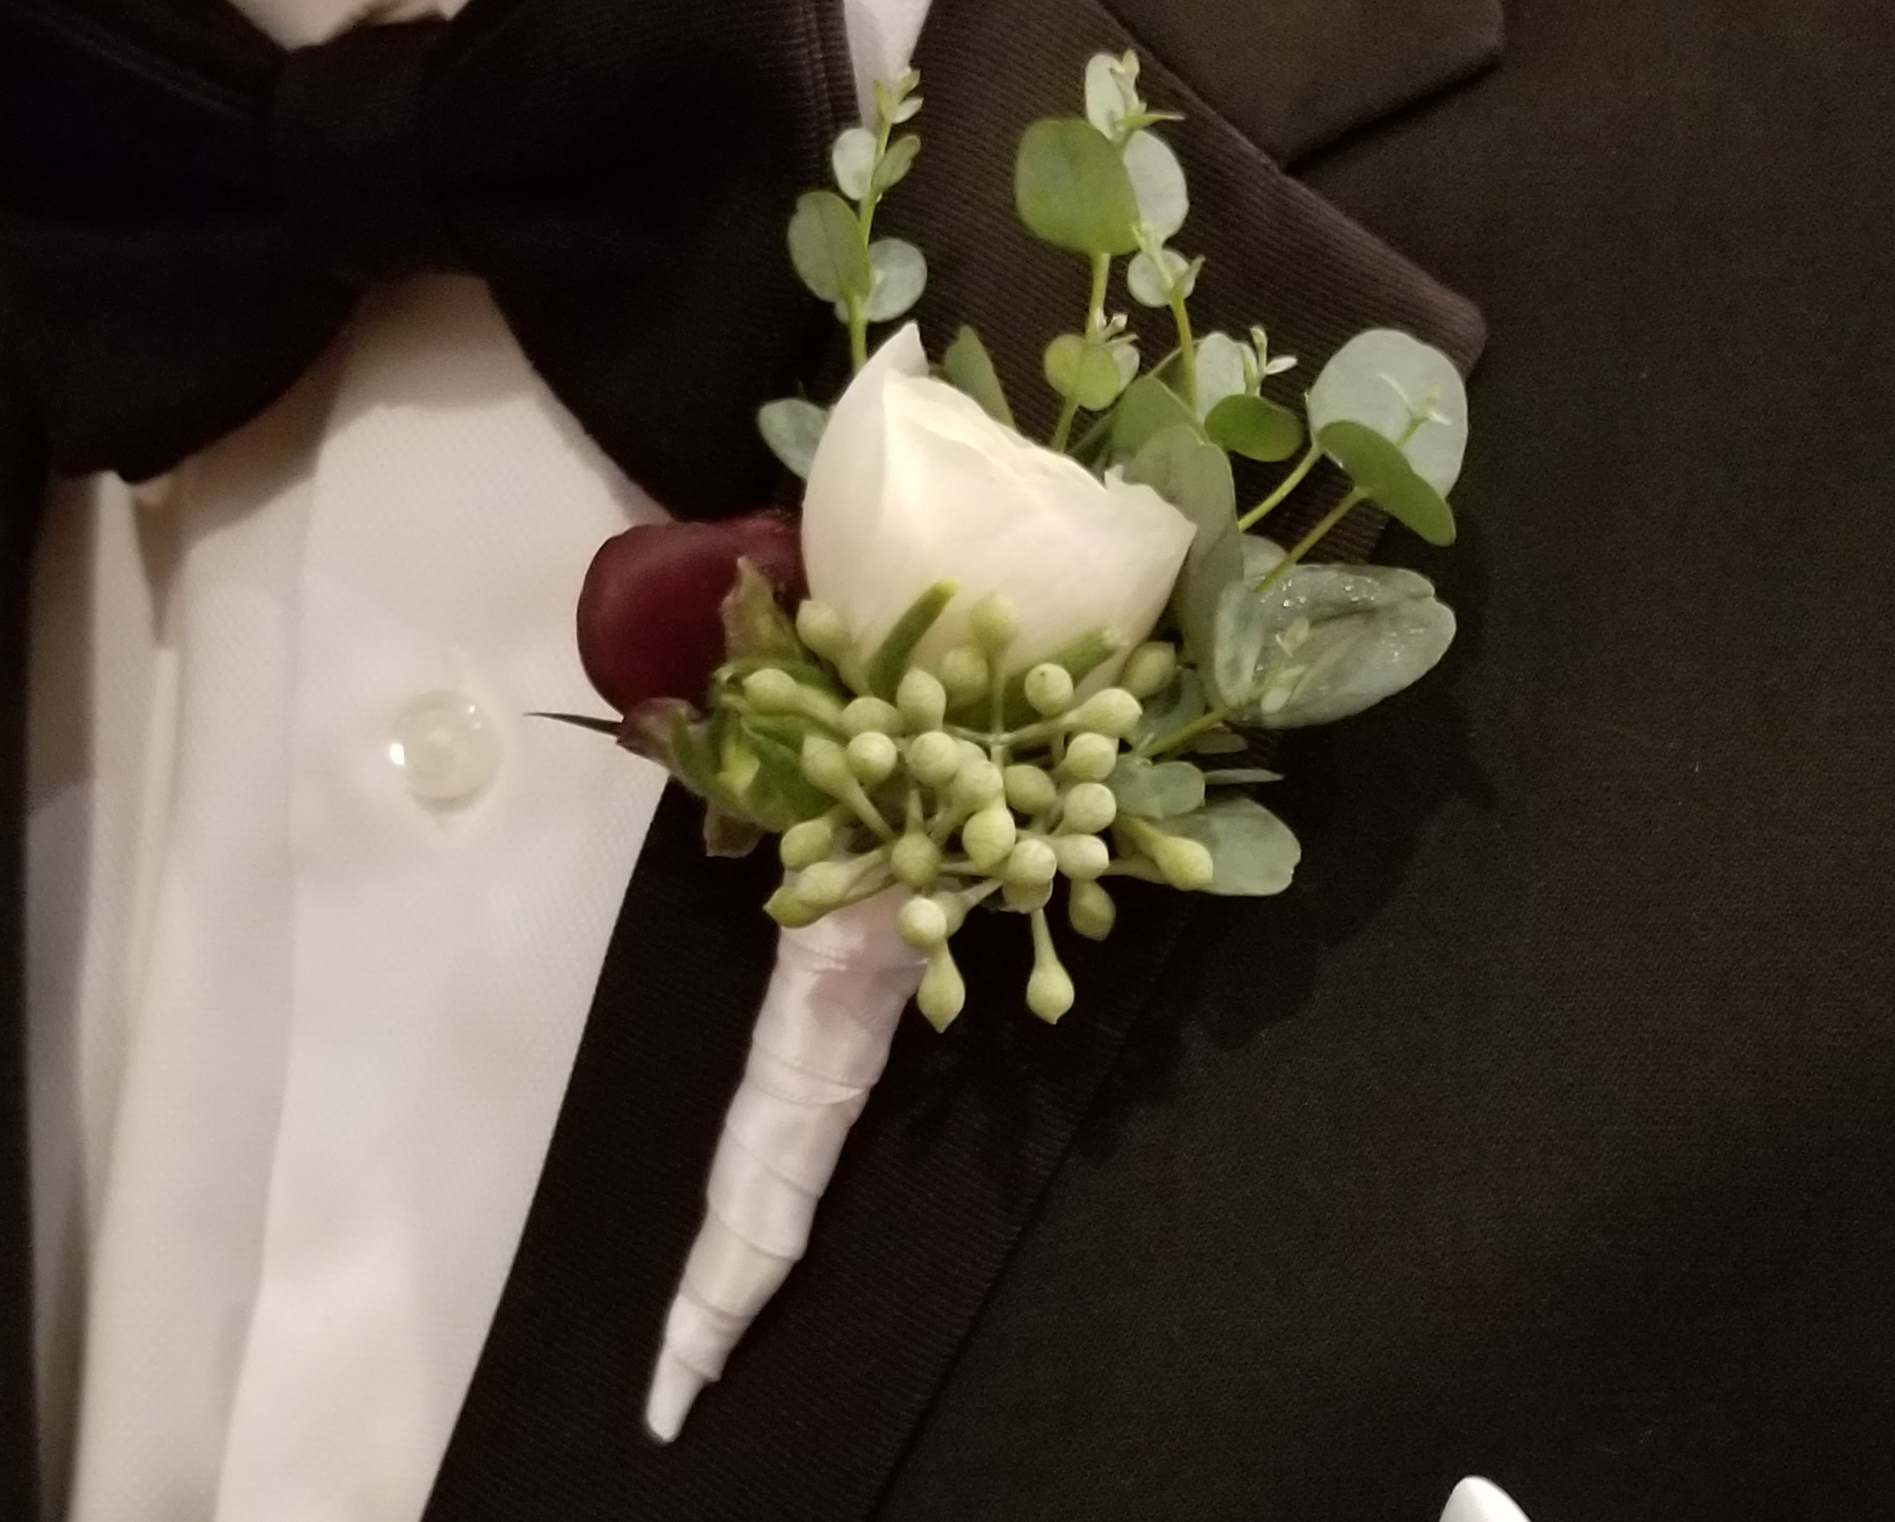 Groom's boutonniere, white ranunculus with spray of burgundy and seeded eucalyptus.